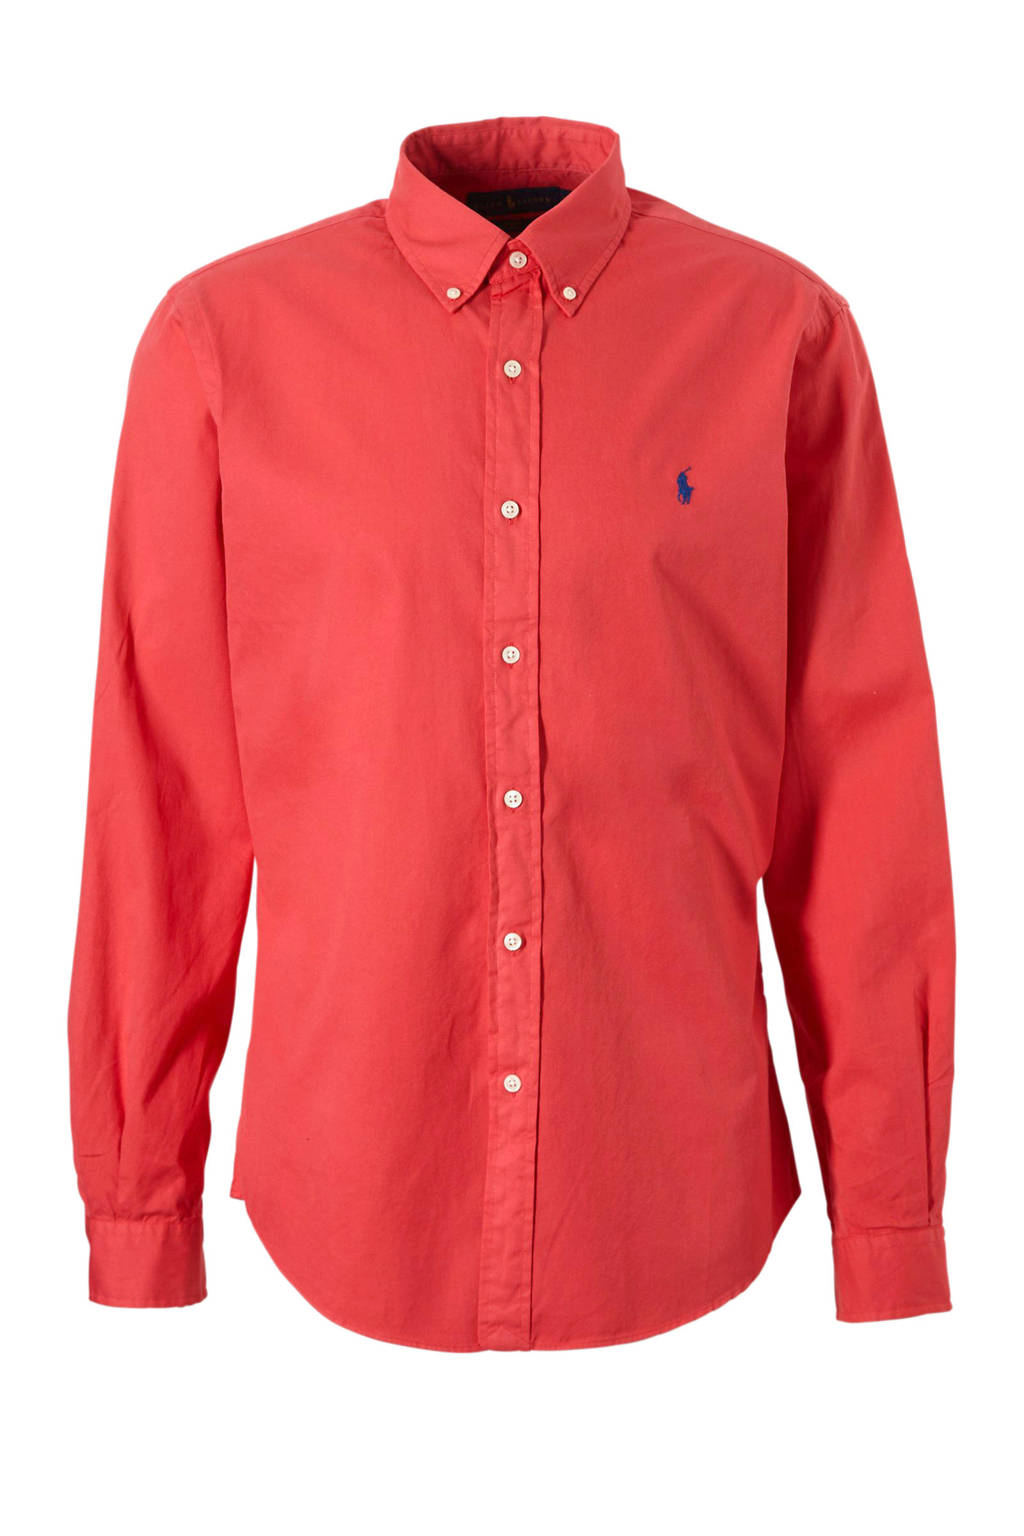 Rood Overhemd Slim Fit.Polo Ralph Lauren Slim Fit Overhemd Wehkamp